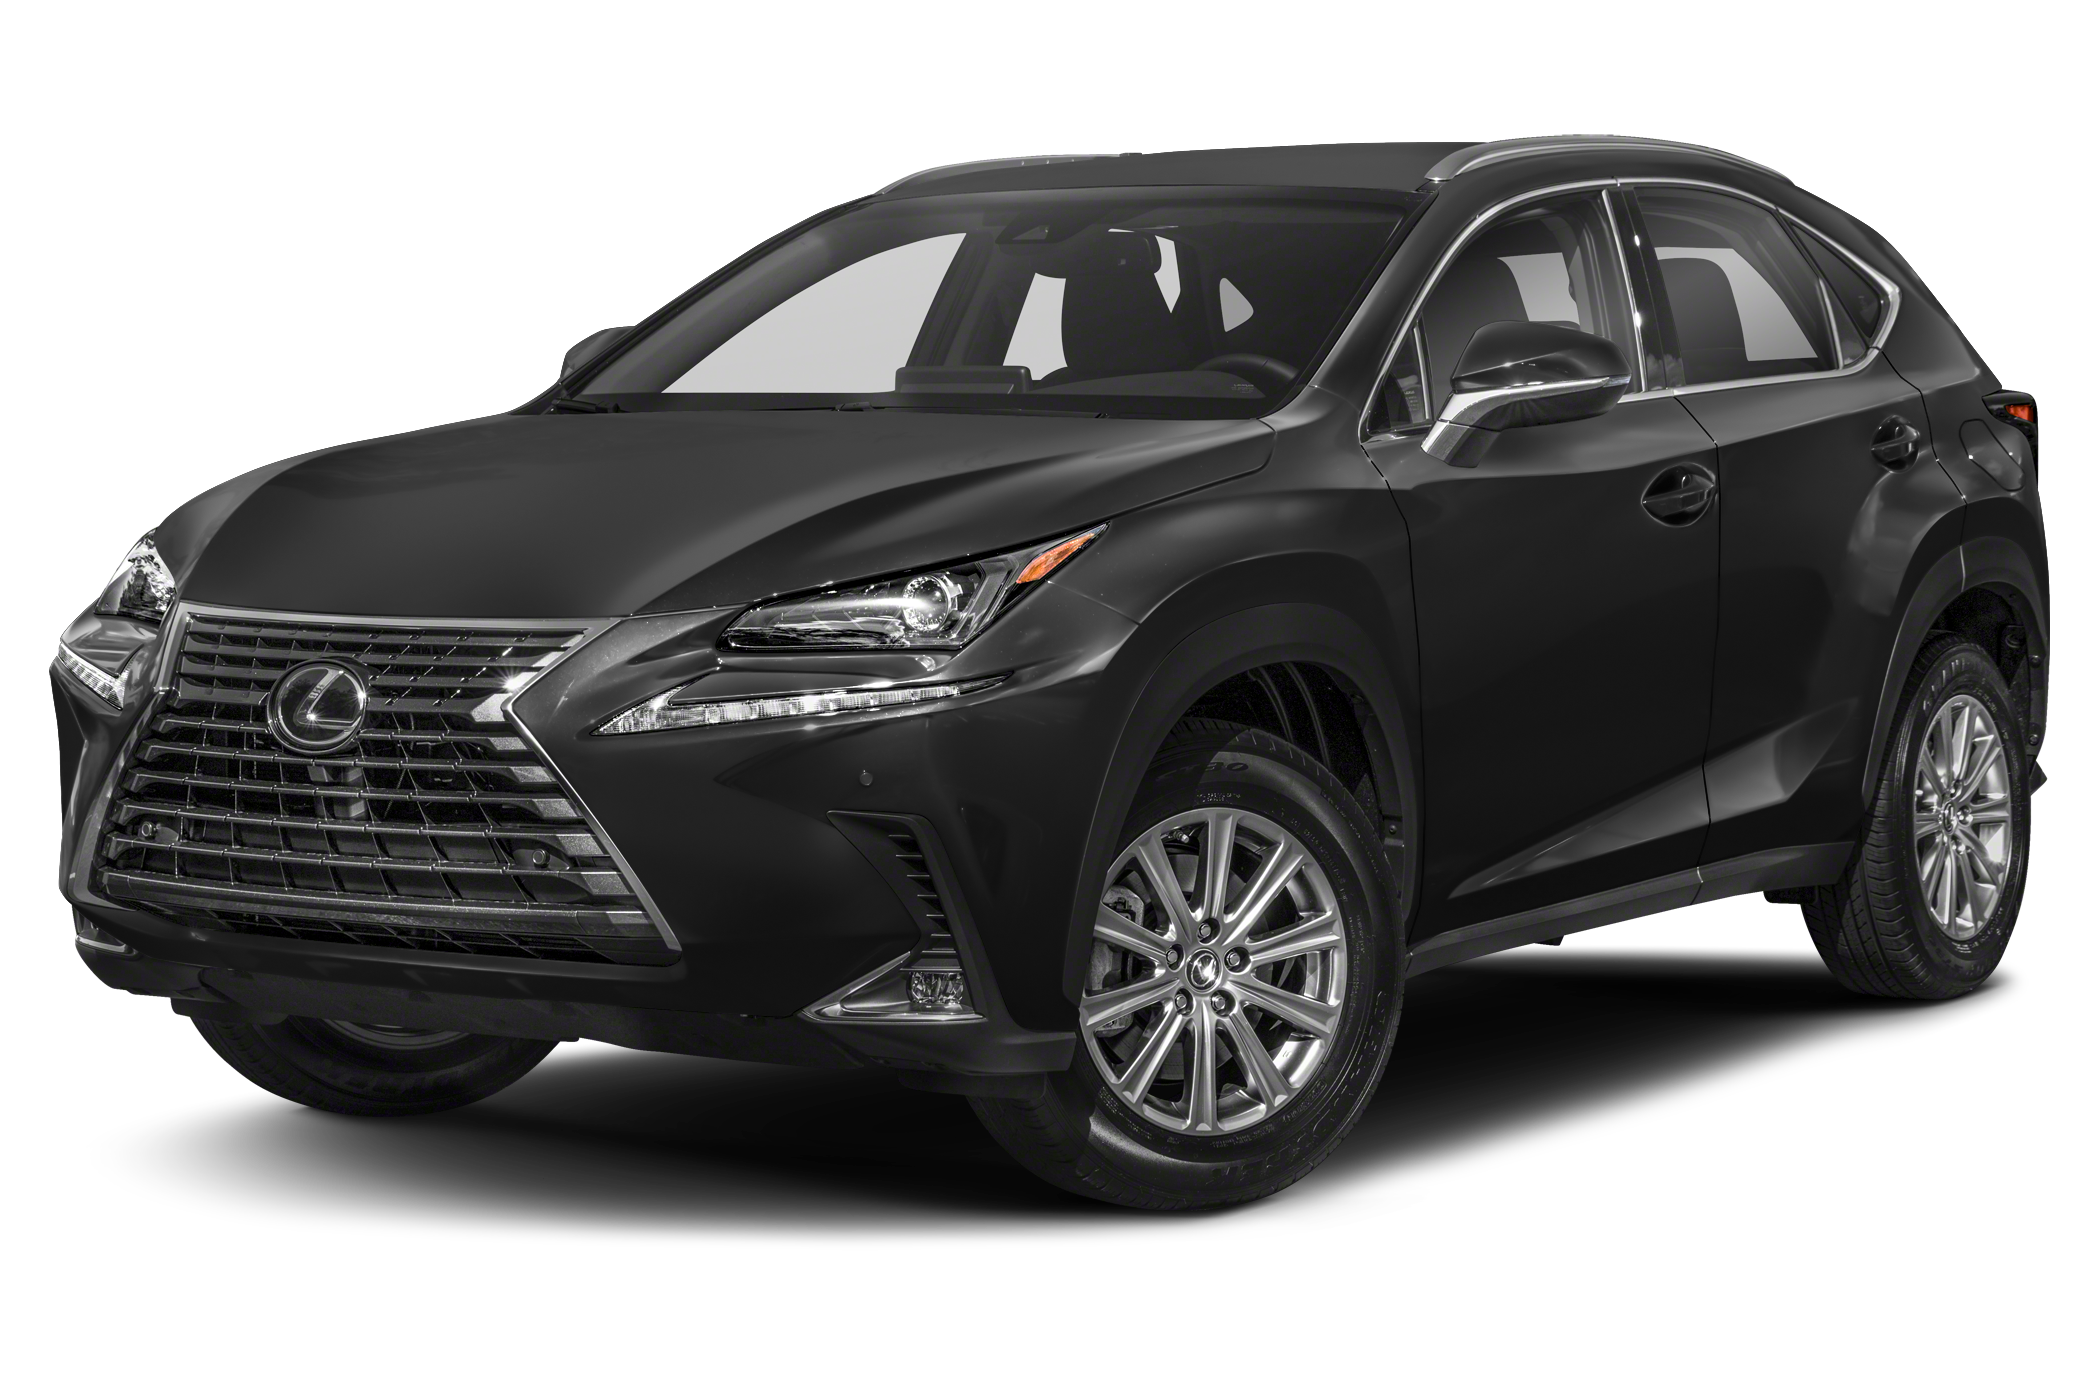 f suv and pricing lease lexus best deals sport fq oem ratings edmunds rx features reviews